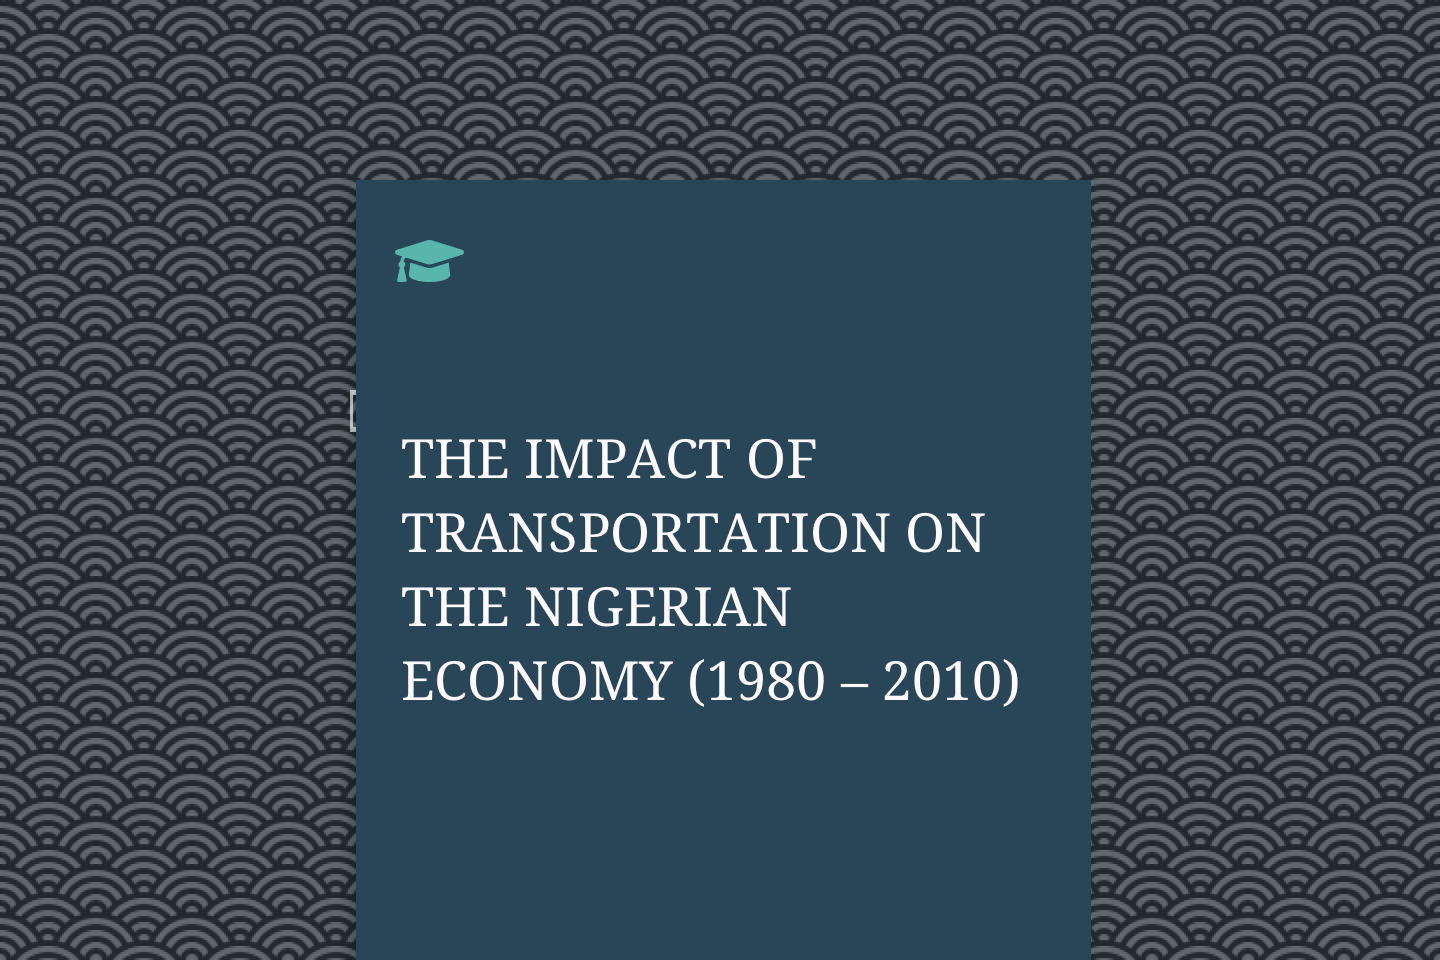 THE IMPACT OF TRANSPORTATION ON THE NIGERIAN ECONOMY (1980 – 2010)